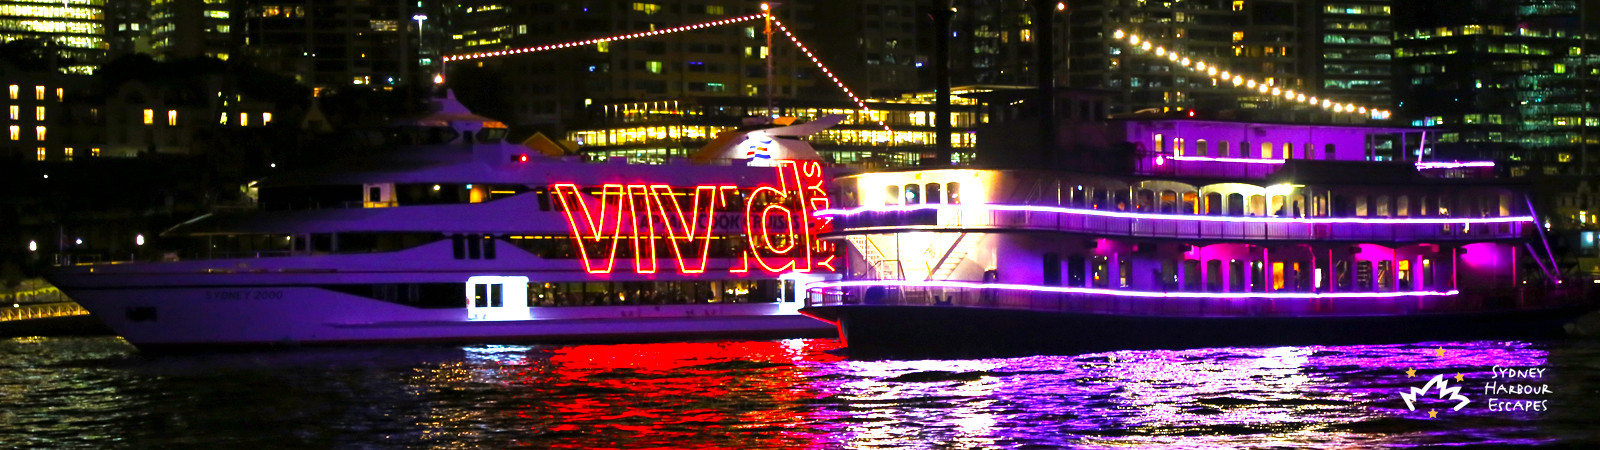 Experience Vivid Cruises Sydney Banner